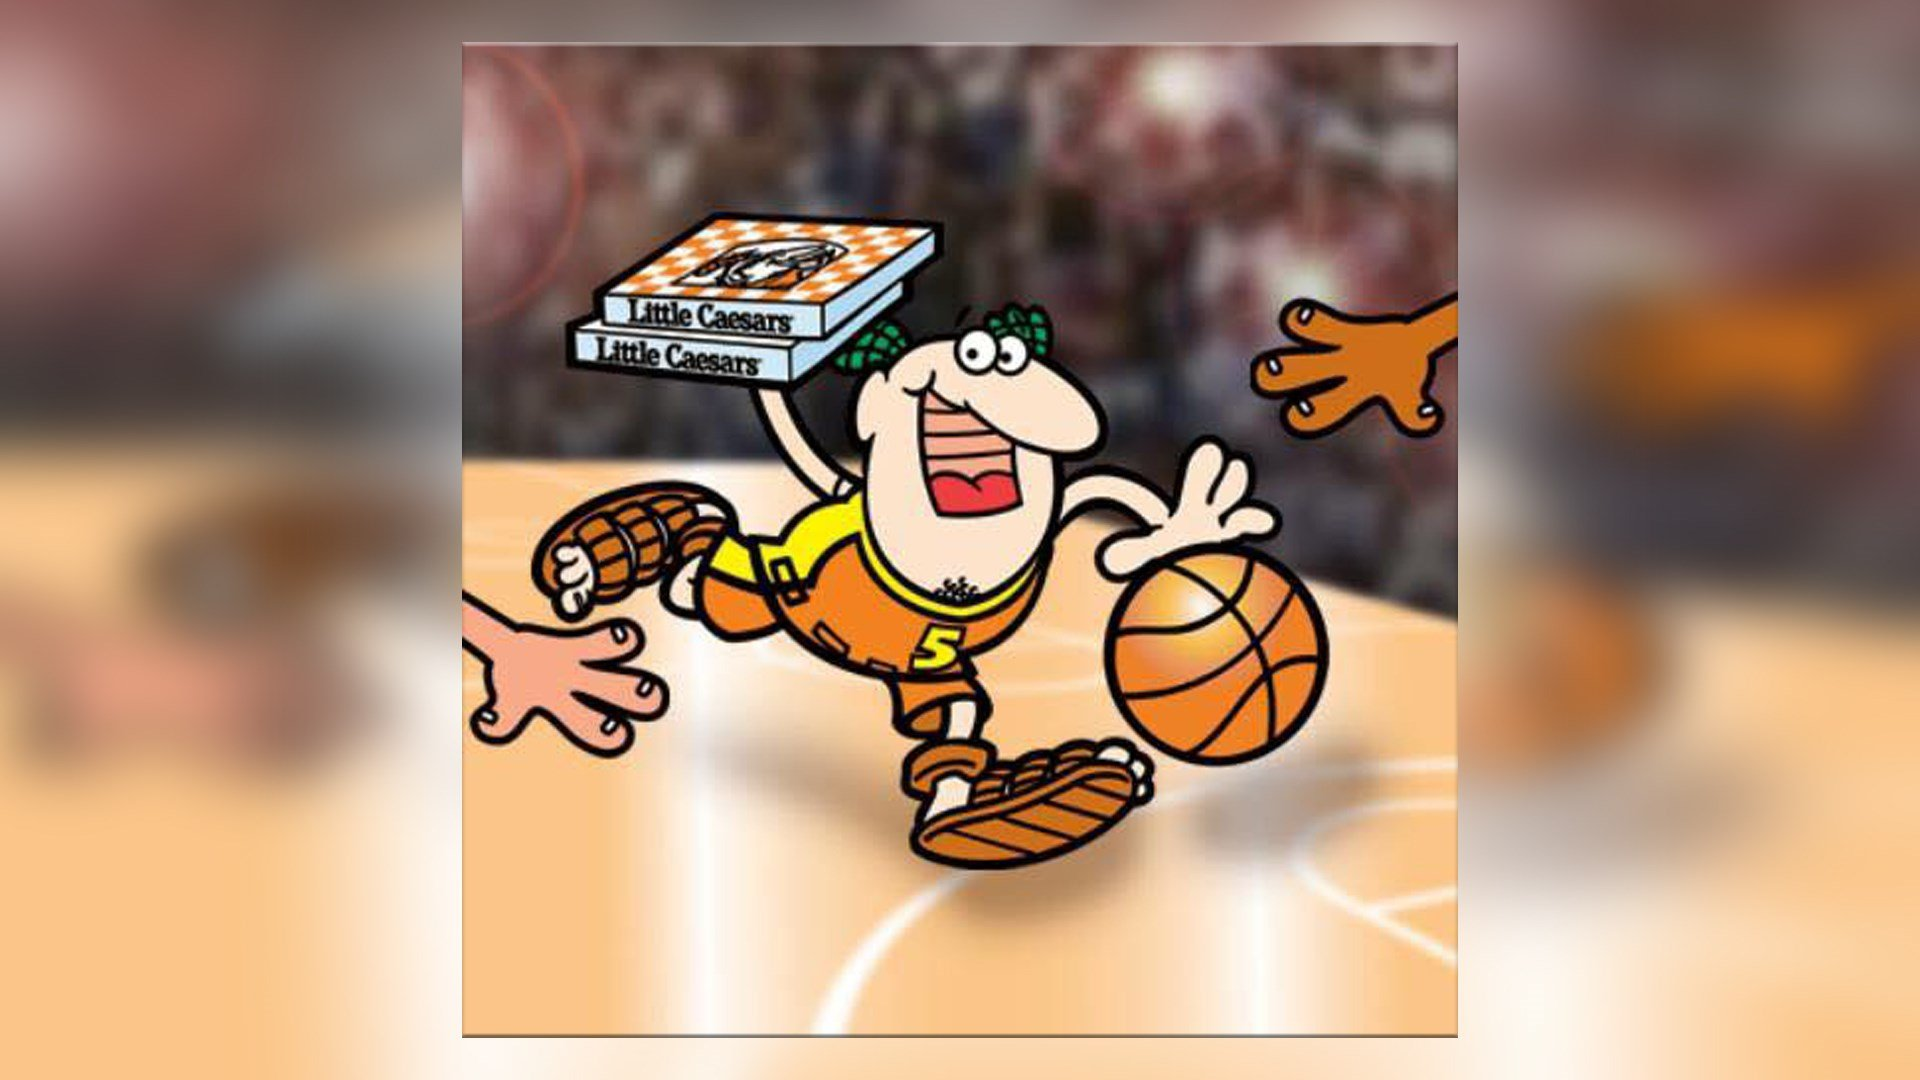 Free Little Caesars for lunch today, thanks to UMBC's NCAA upset